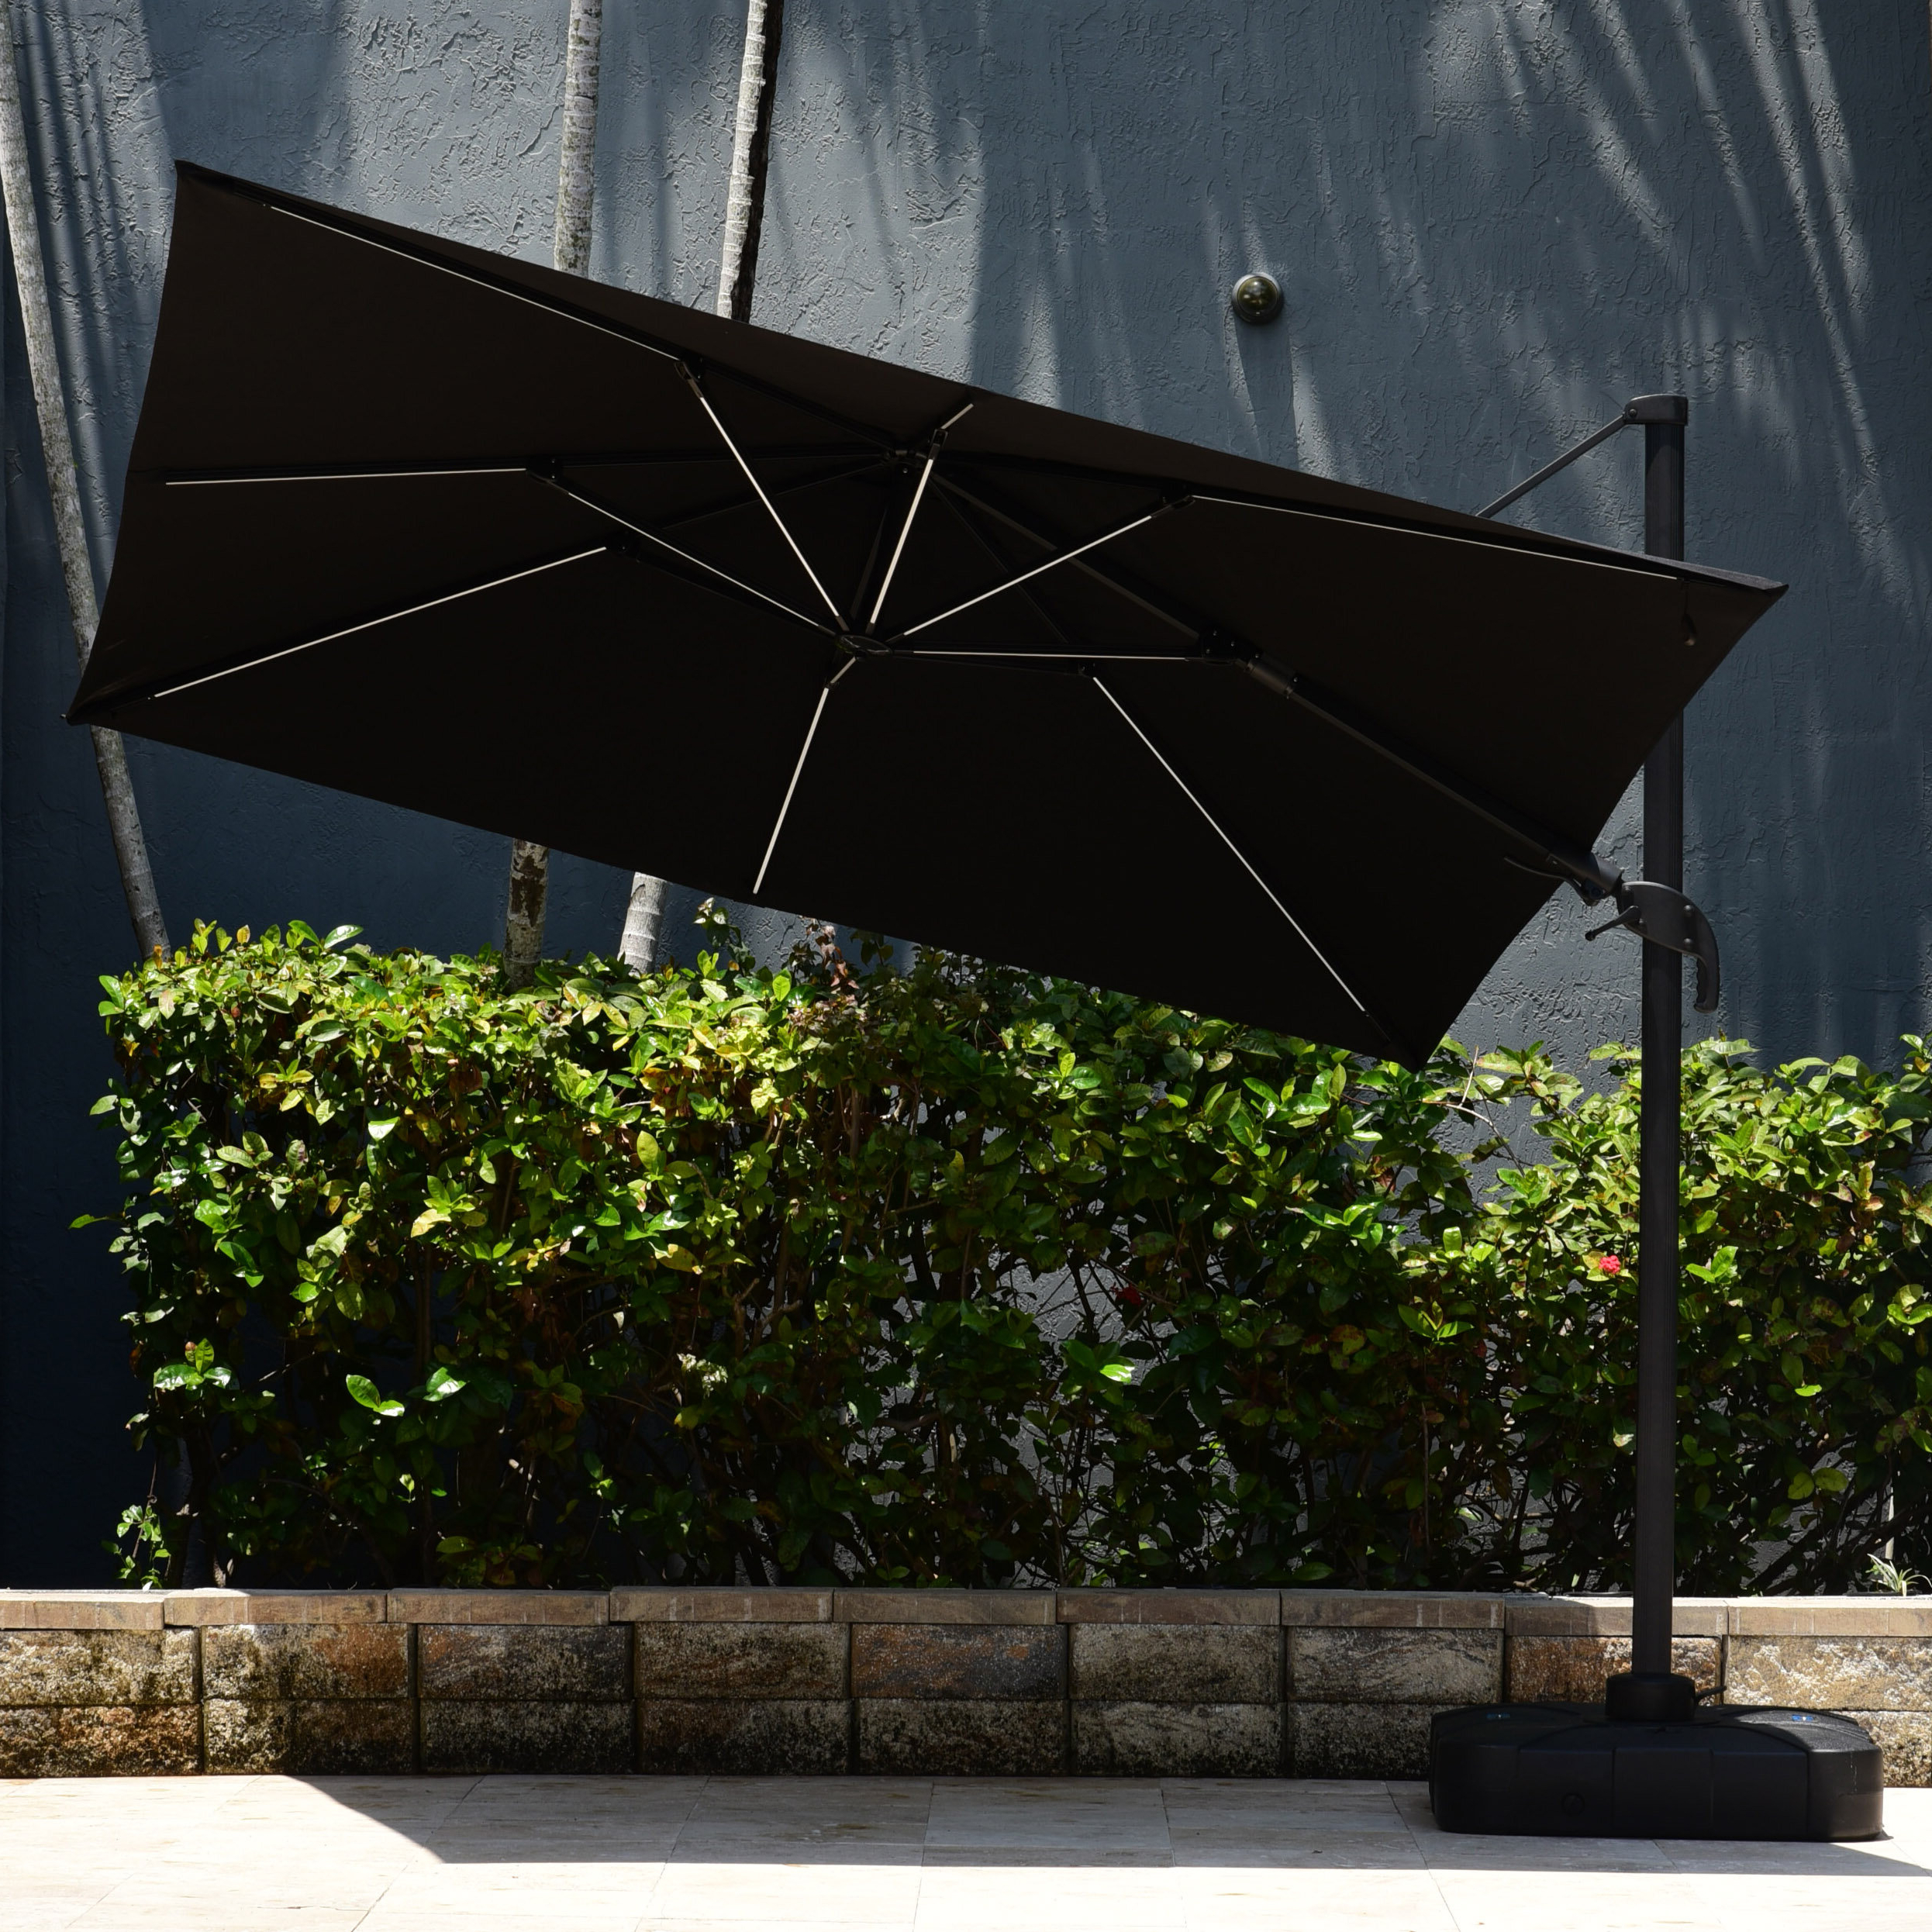 Maglione Fabric 4Cantilever Umbrellas Intended For Recent Spitler 10' Square Cantilever Umbrella (Gallery 9 of 20)